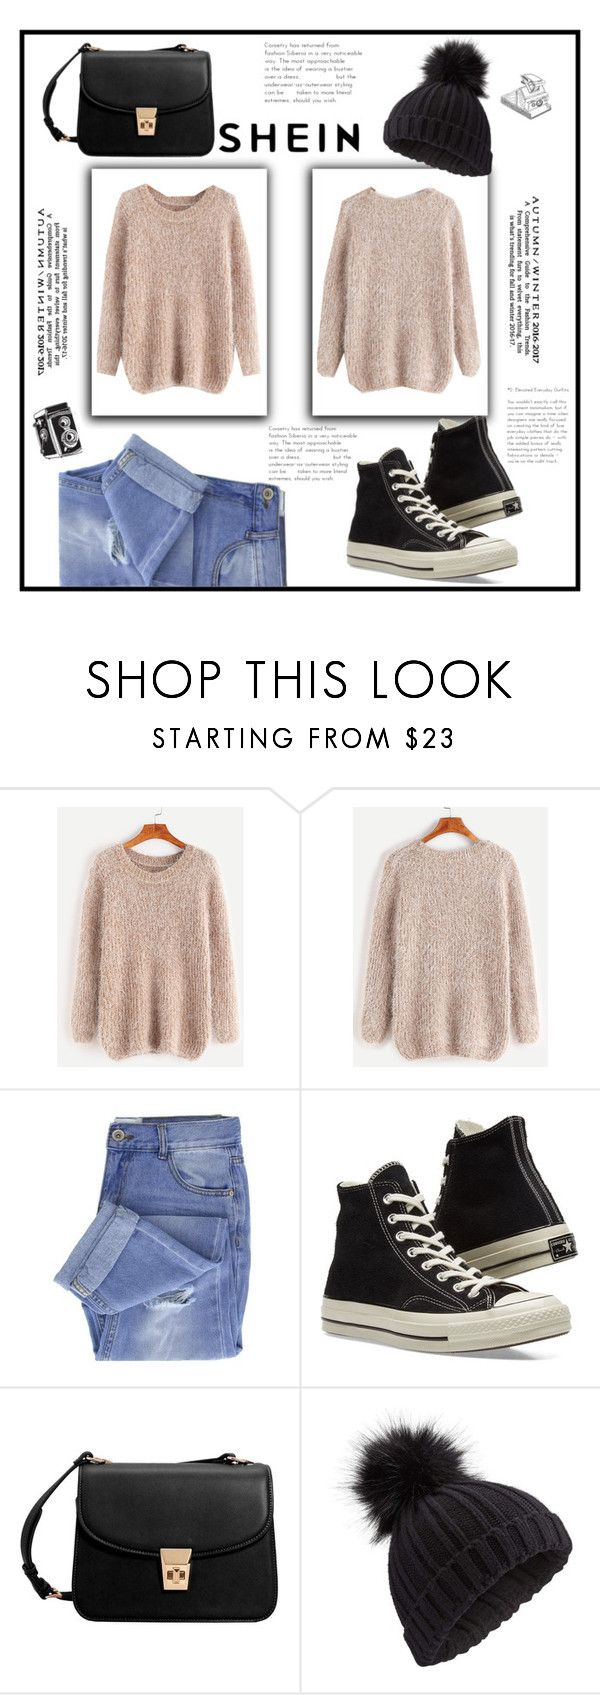 """""""068"""" by holography ❤ liked on Polyvore featuring Taya, Converse, MANGO, Miss Selfridge and Tattly"""